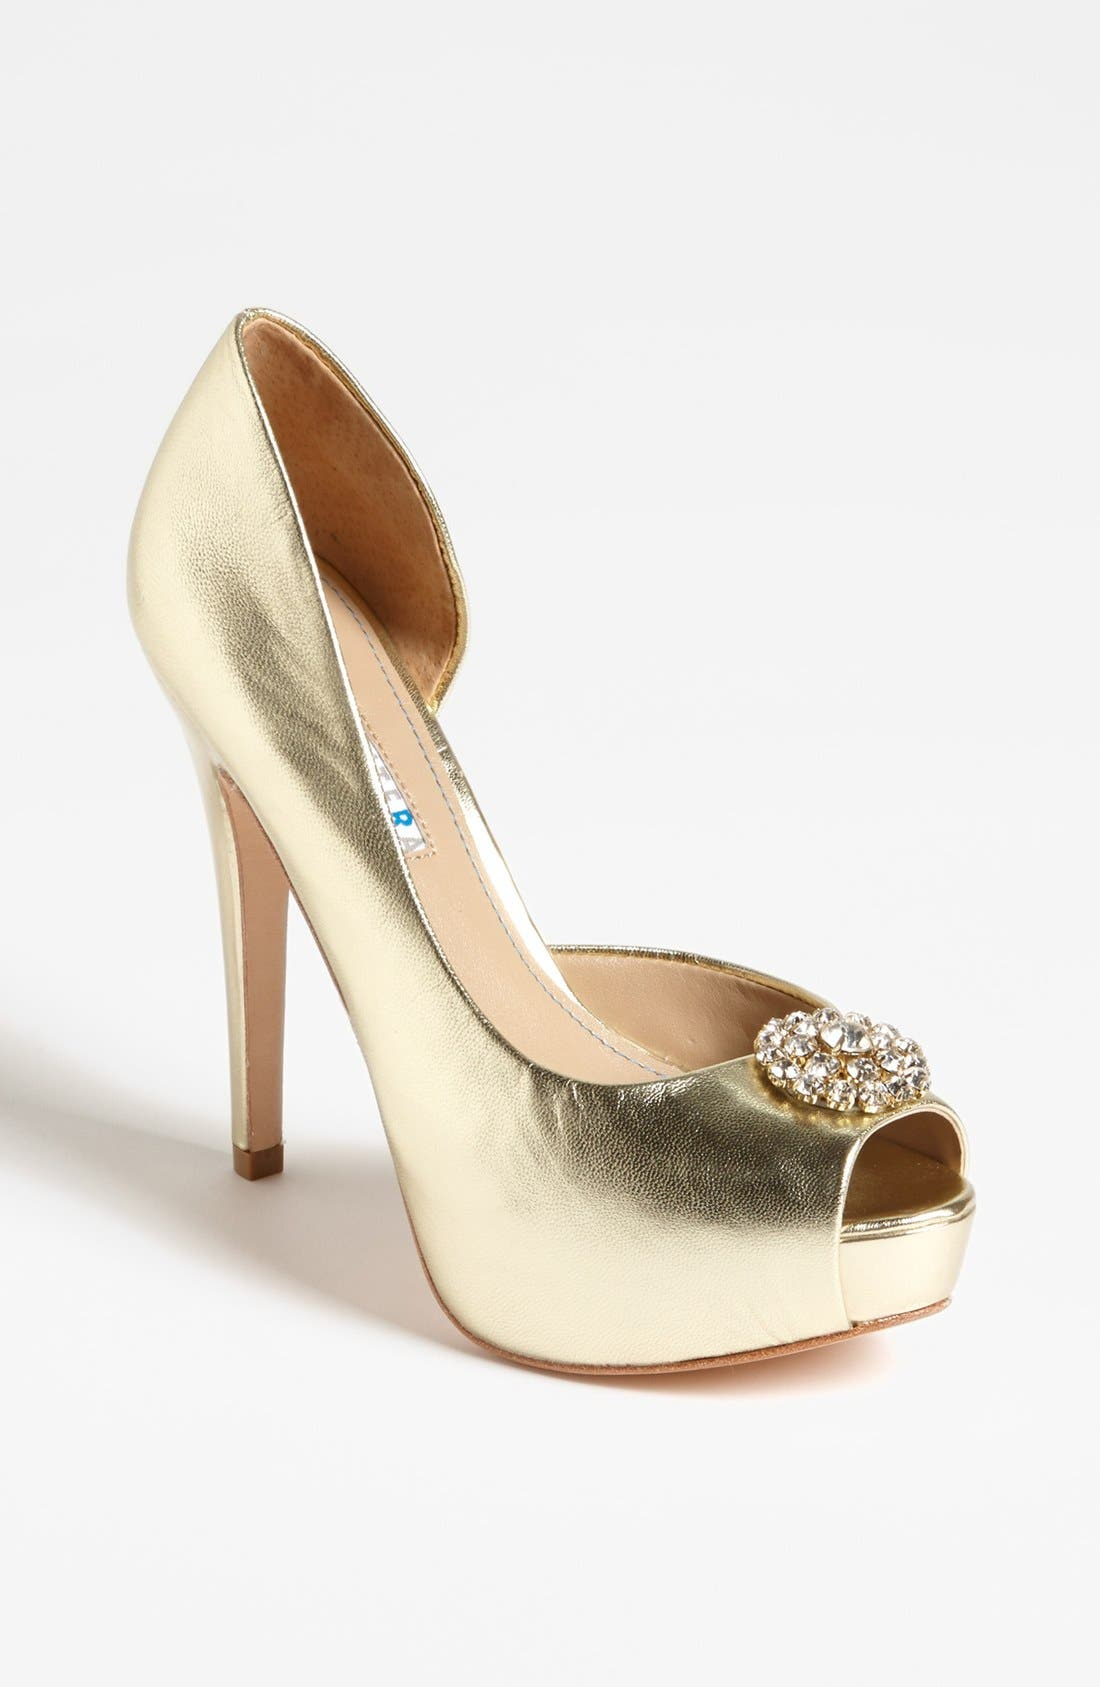 Main Image - David Tutera 'Soiree' Pump